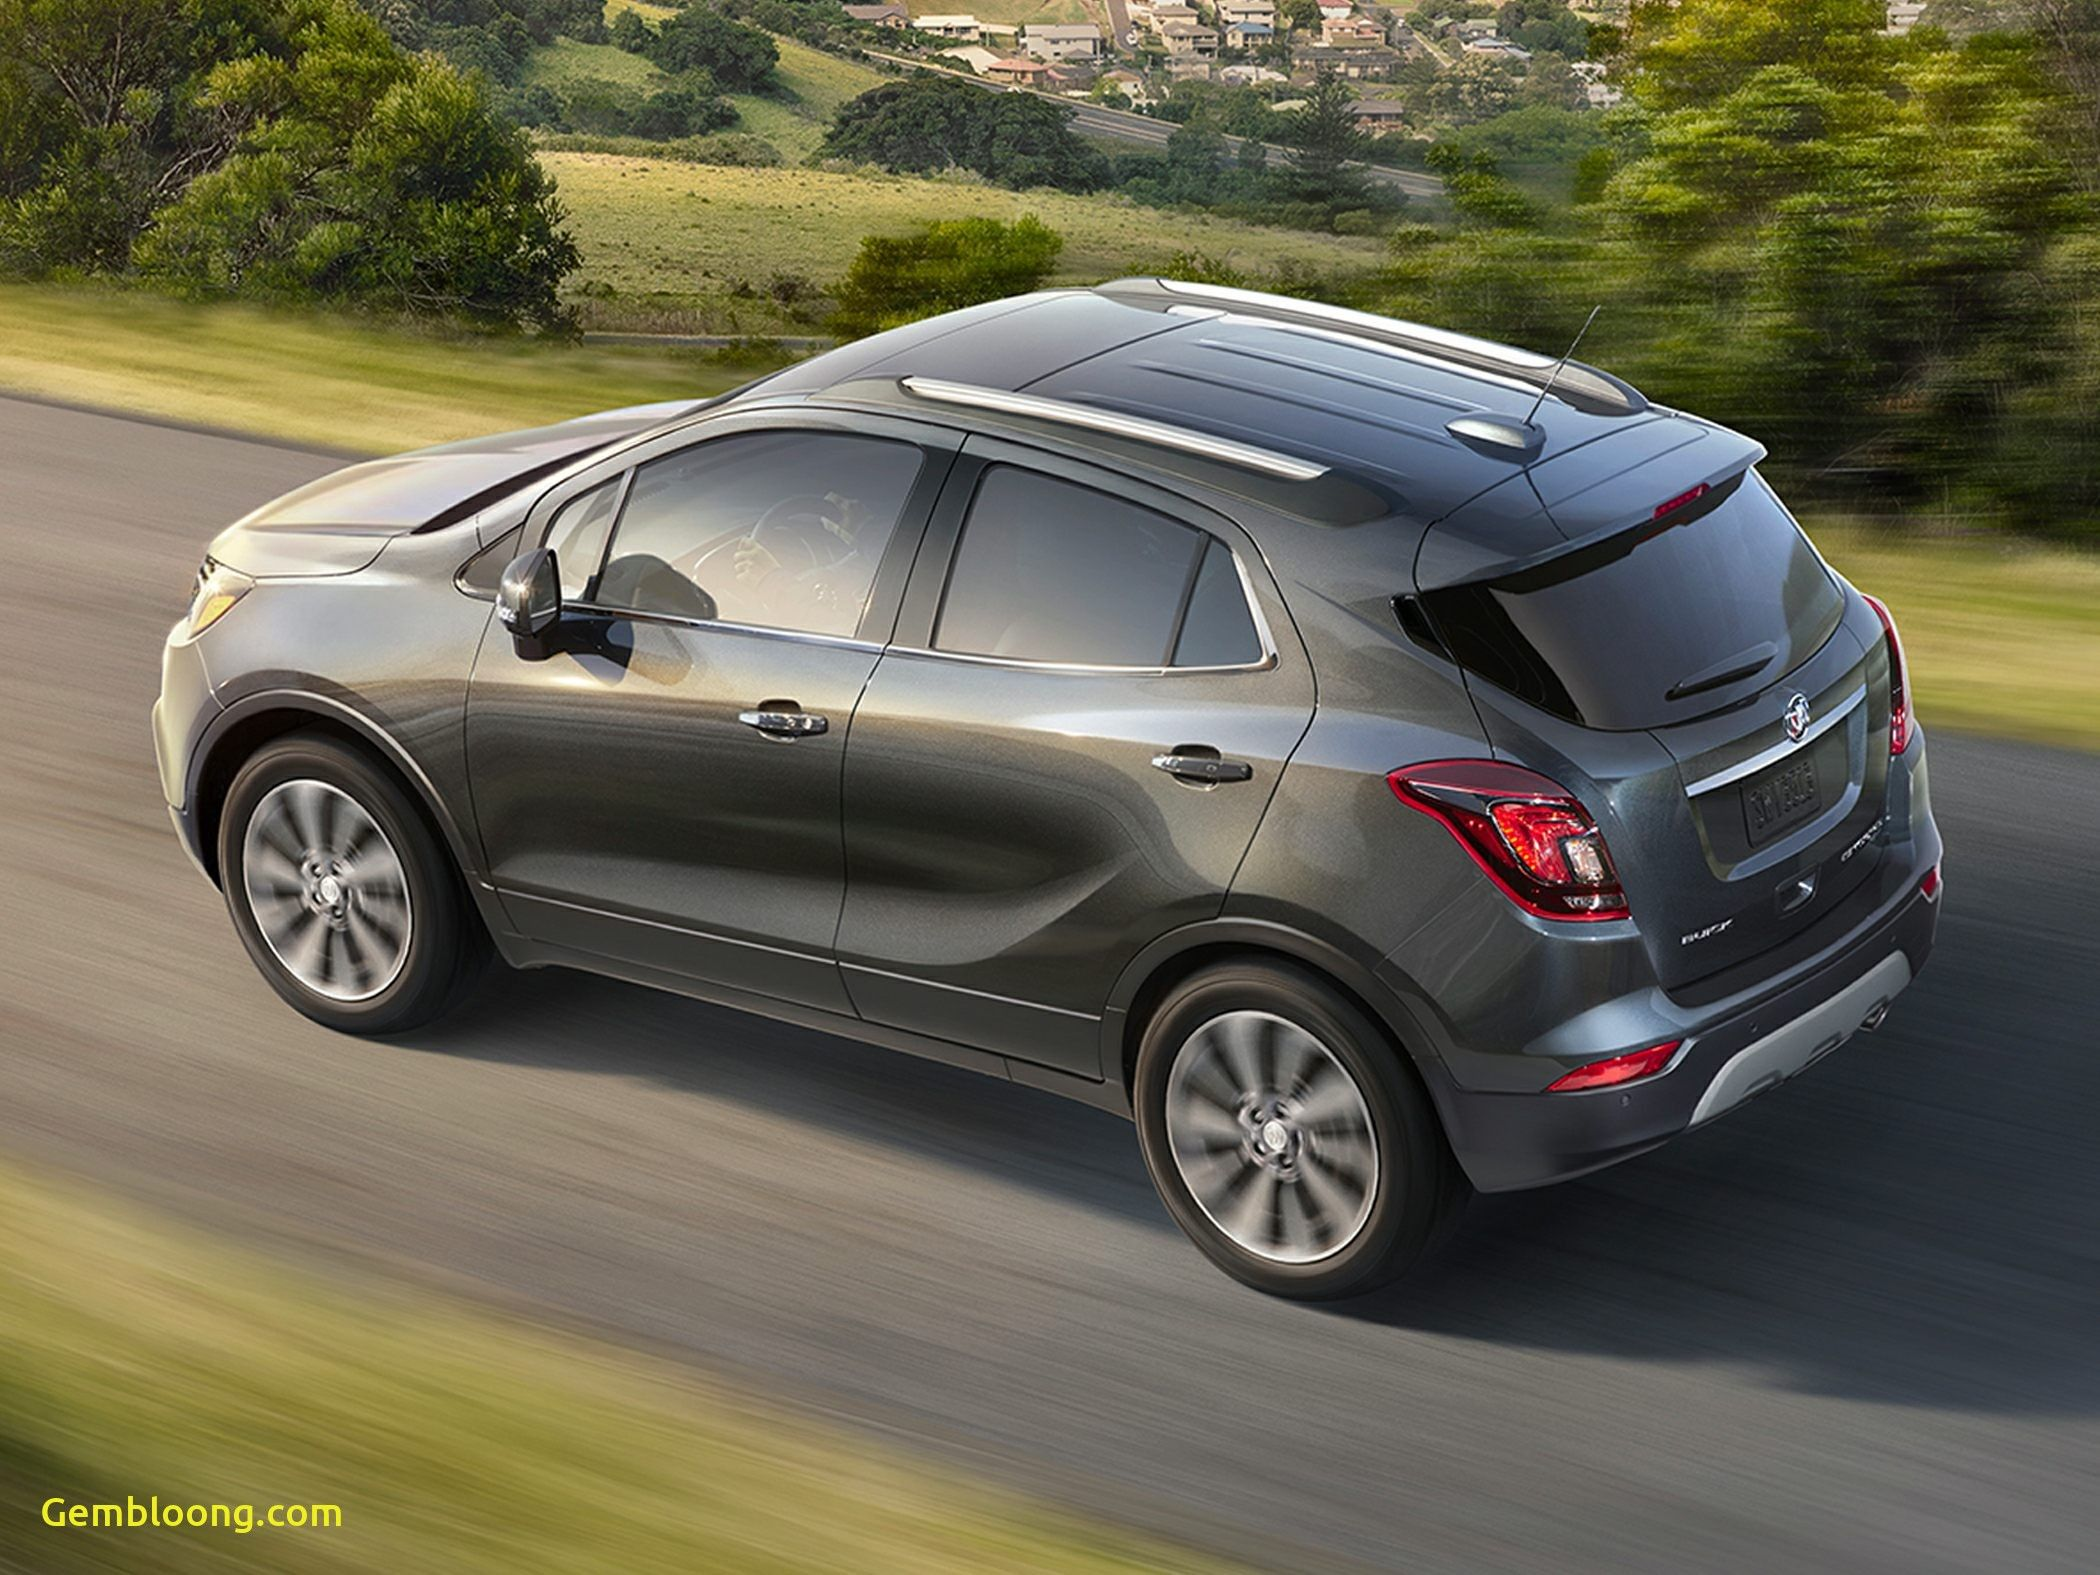 Buick Encore 2019 Best Of New 2019 Buick Encore Price S Reviews Safety Buick Encore Buick Expensive Cars